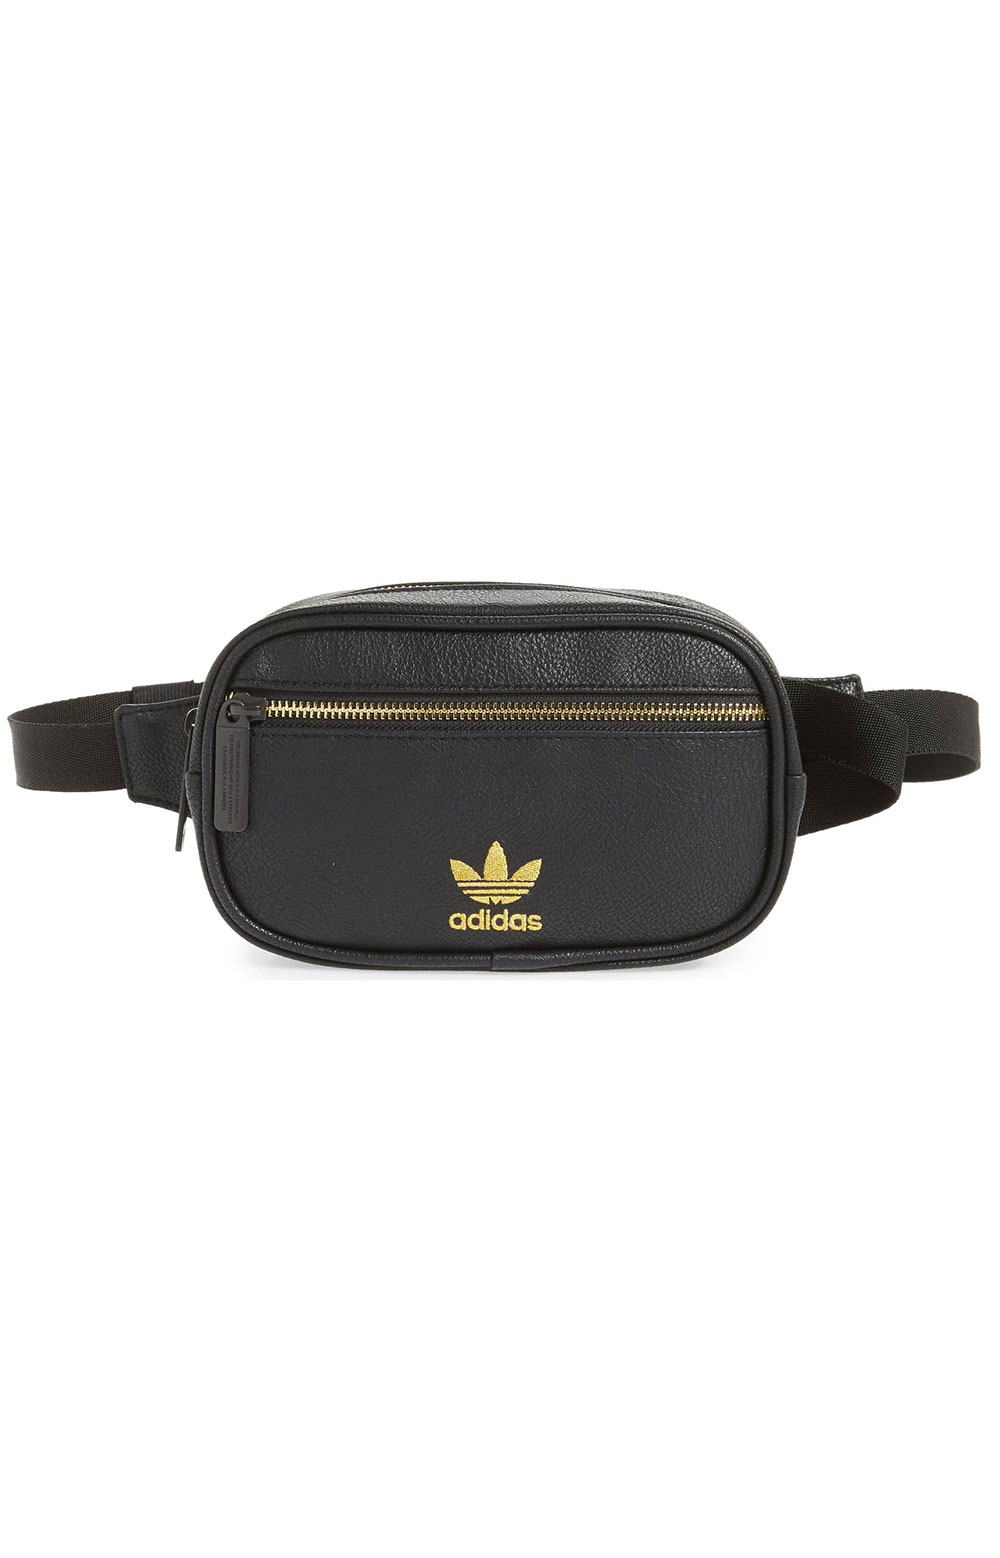 PU Leather Waist Pack - Black/Gold